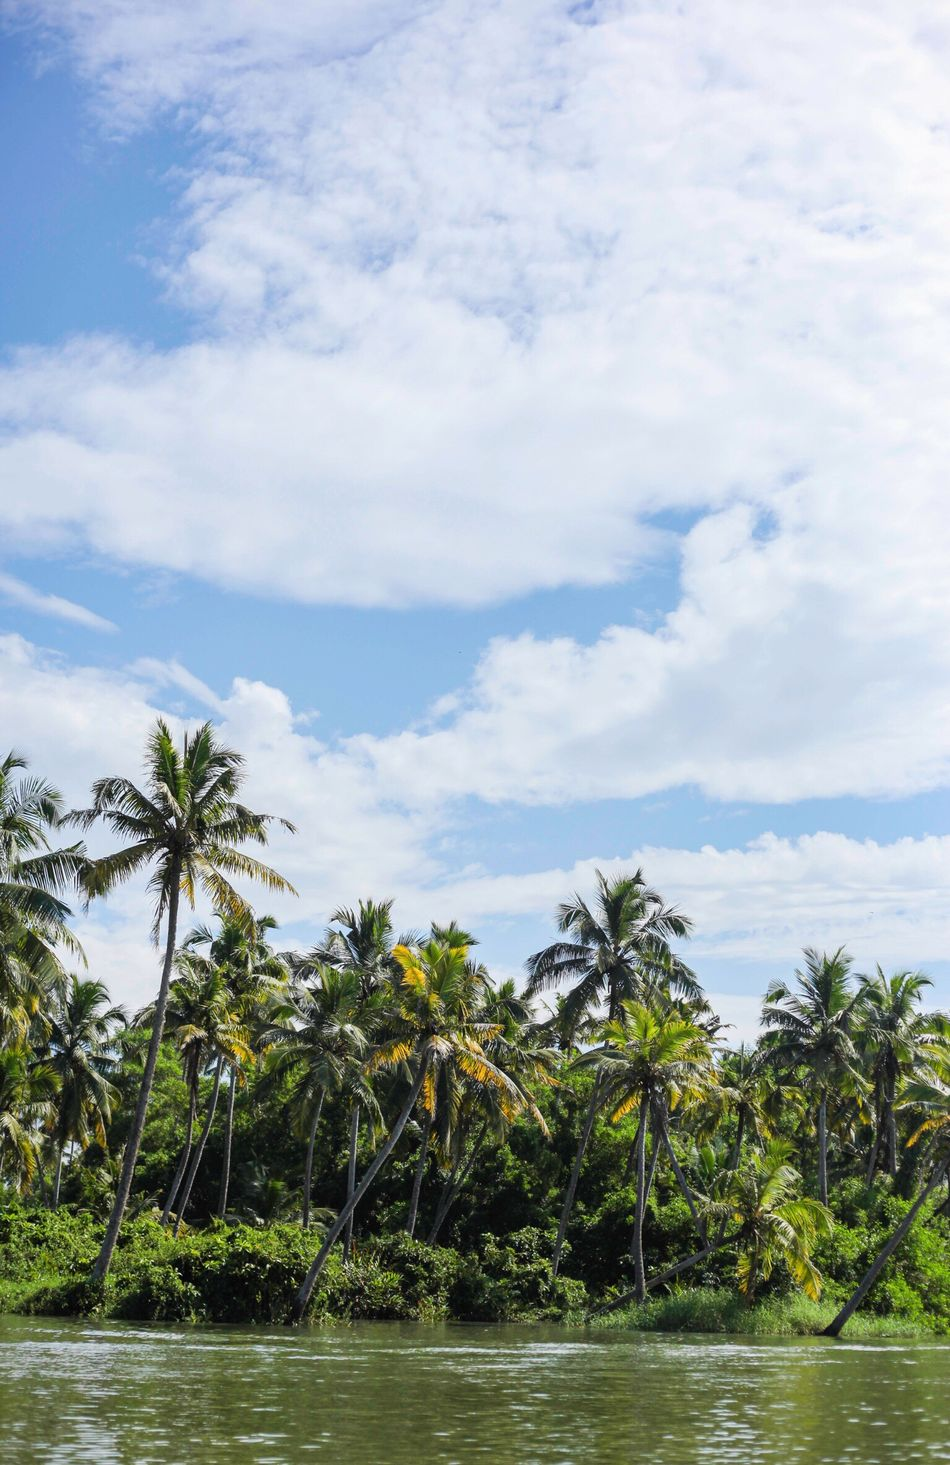 Greenery Coconut Trees Nature Poovar Kerala India Travel Wanderlust Check This Out